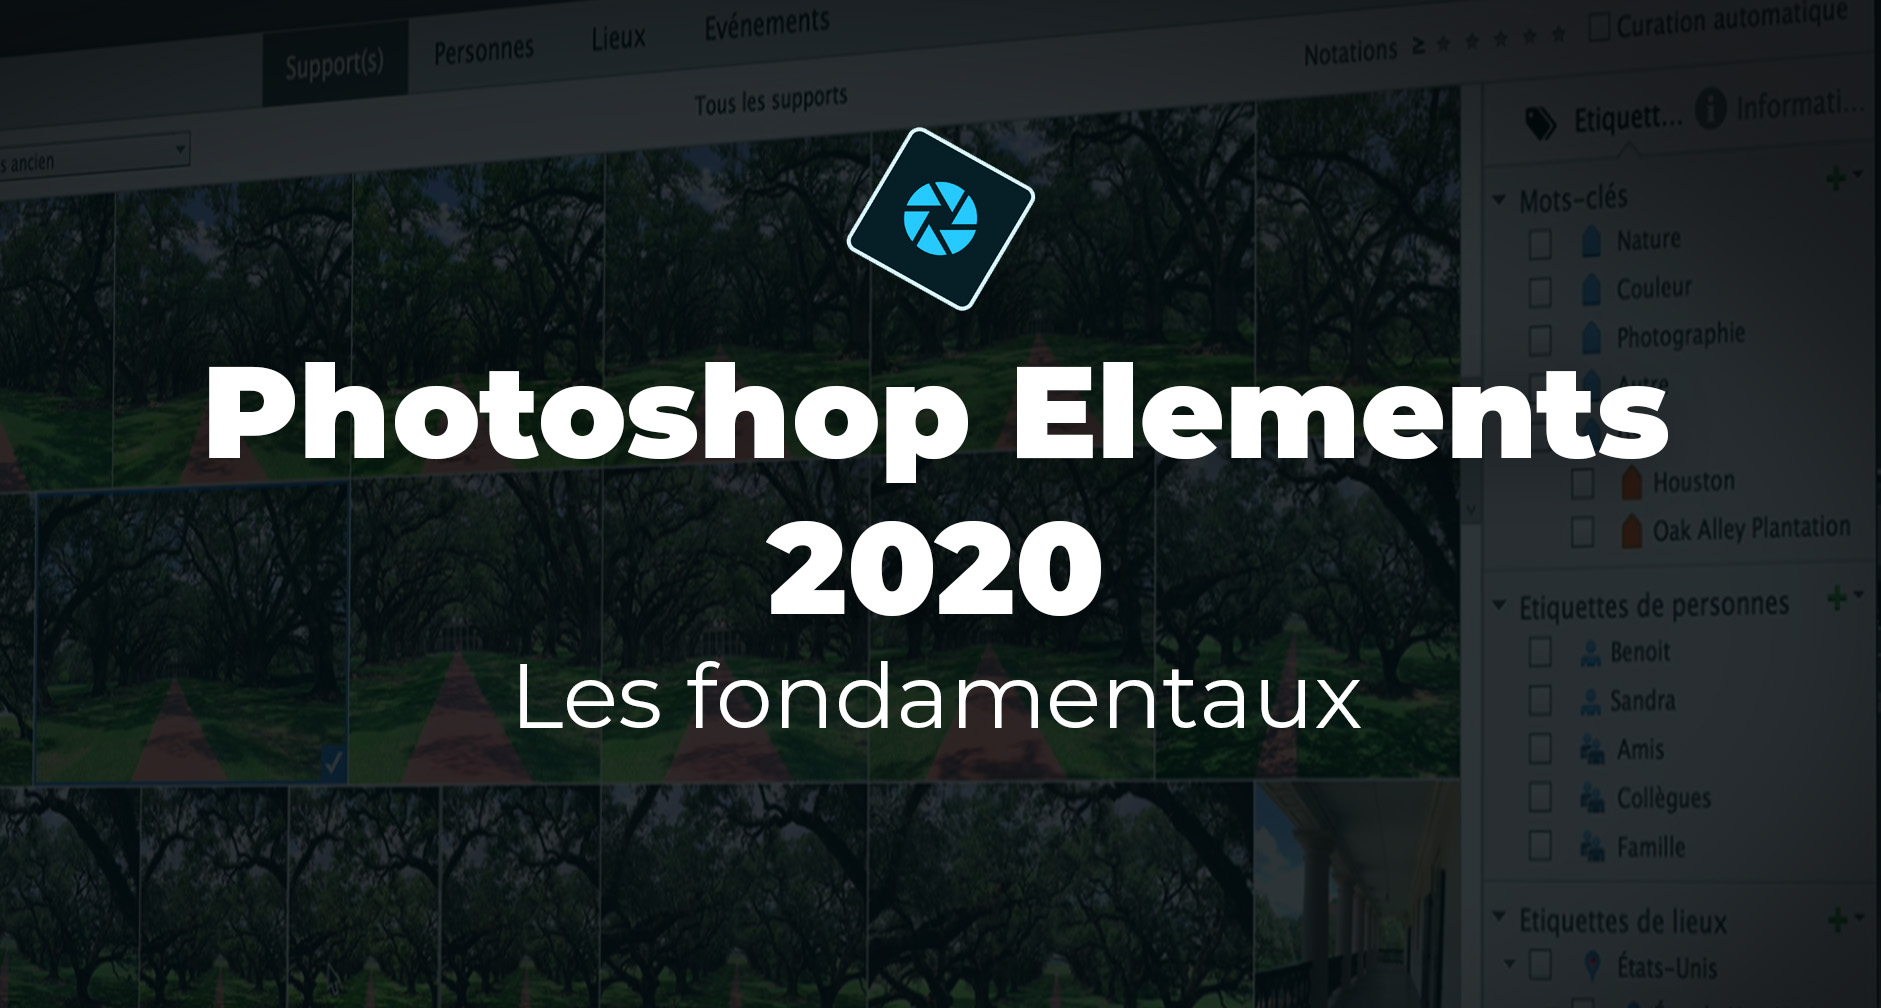 Apprendre Photoshop Elements 2020 - Les fondamentaux